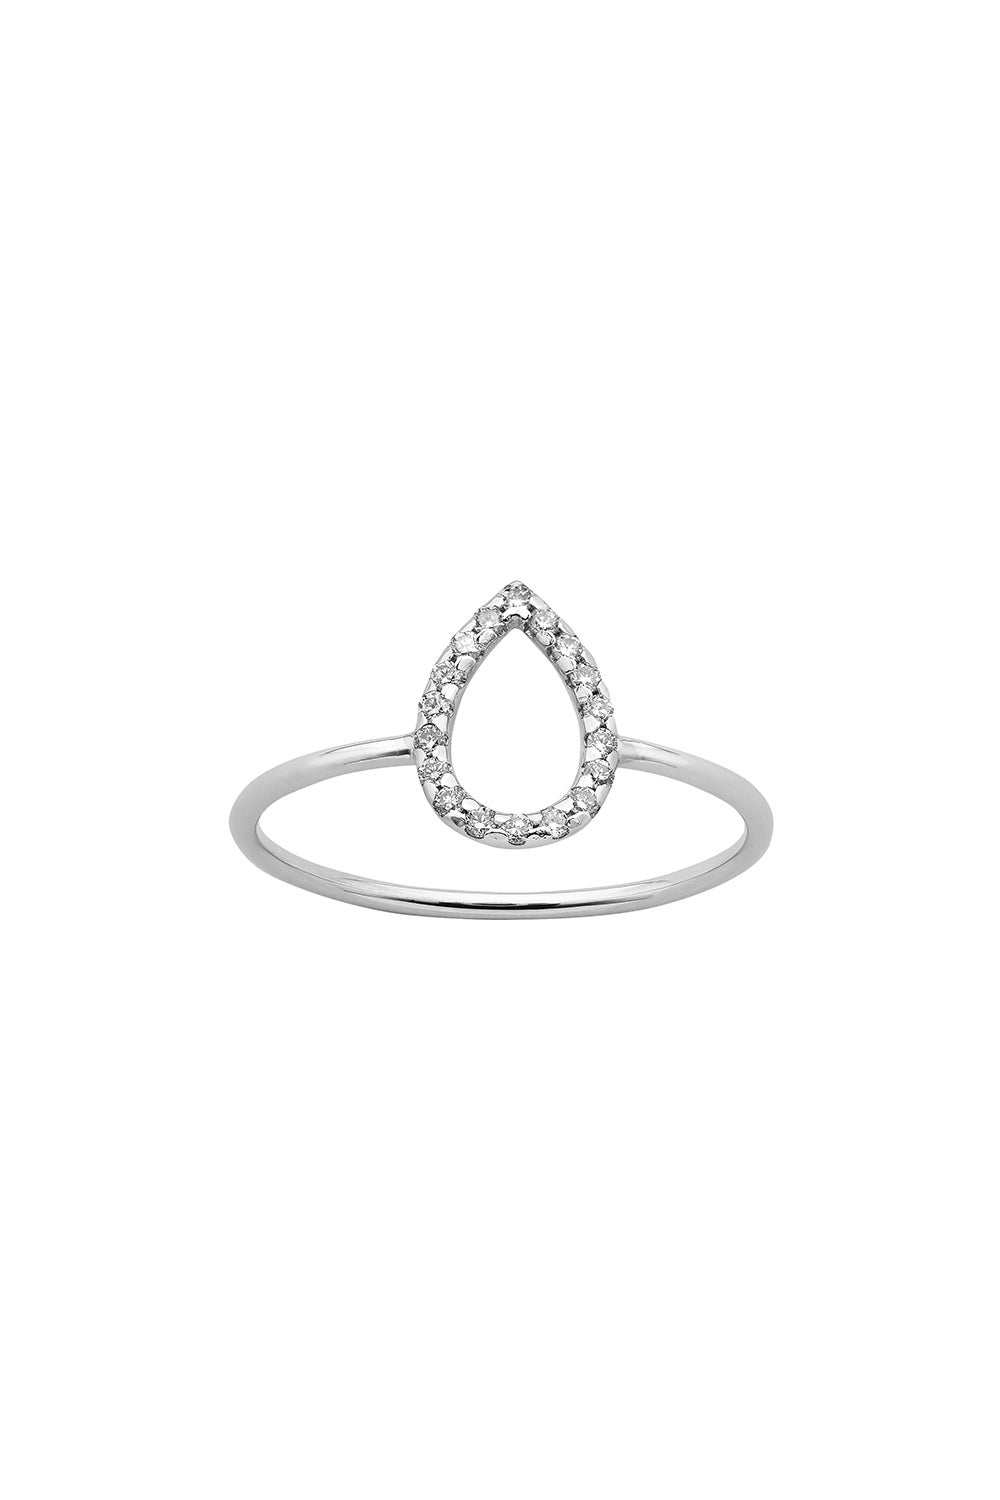 Capsule Diamond Ring, 9ct White Gold, .12ct Diamond